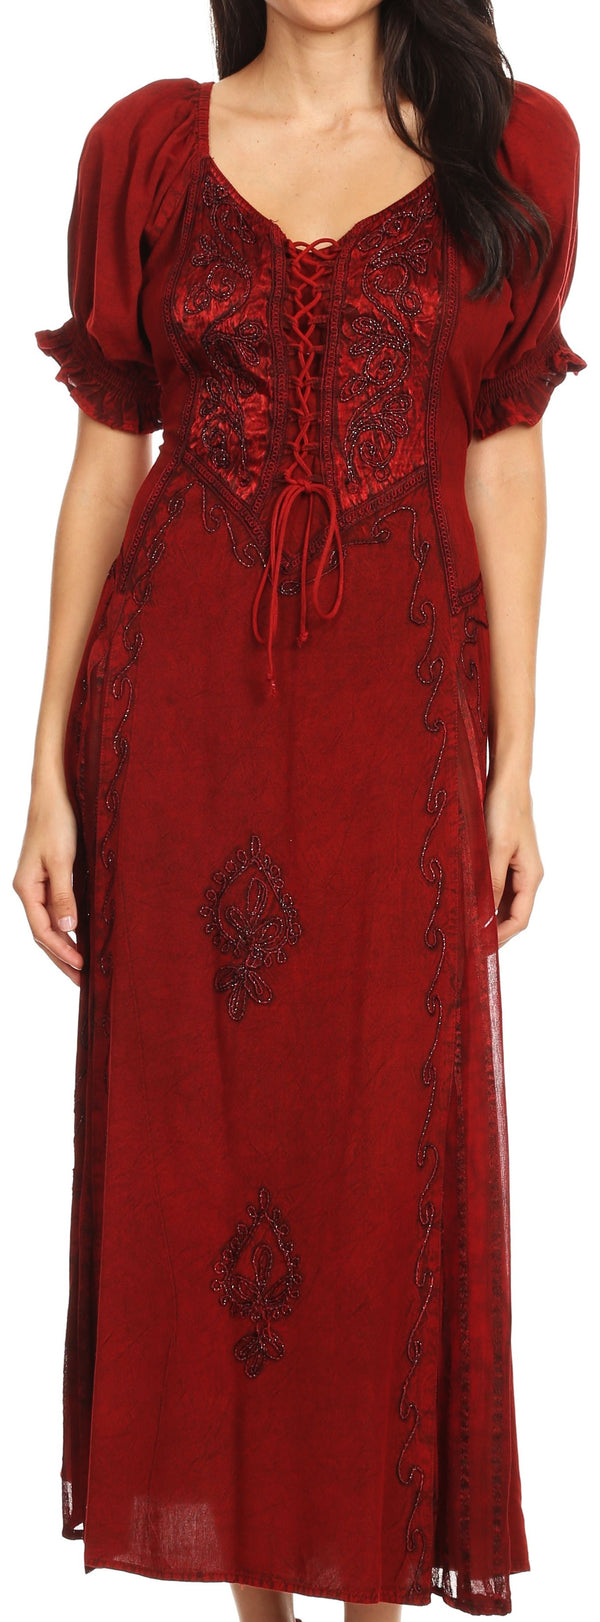 Sakkas Sakkas Bridget Embroidered Renaissance Dress